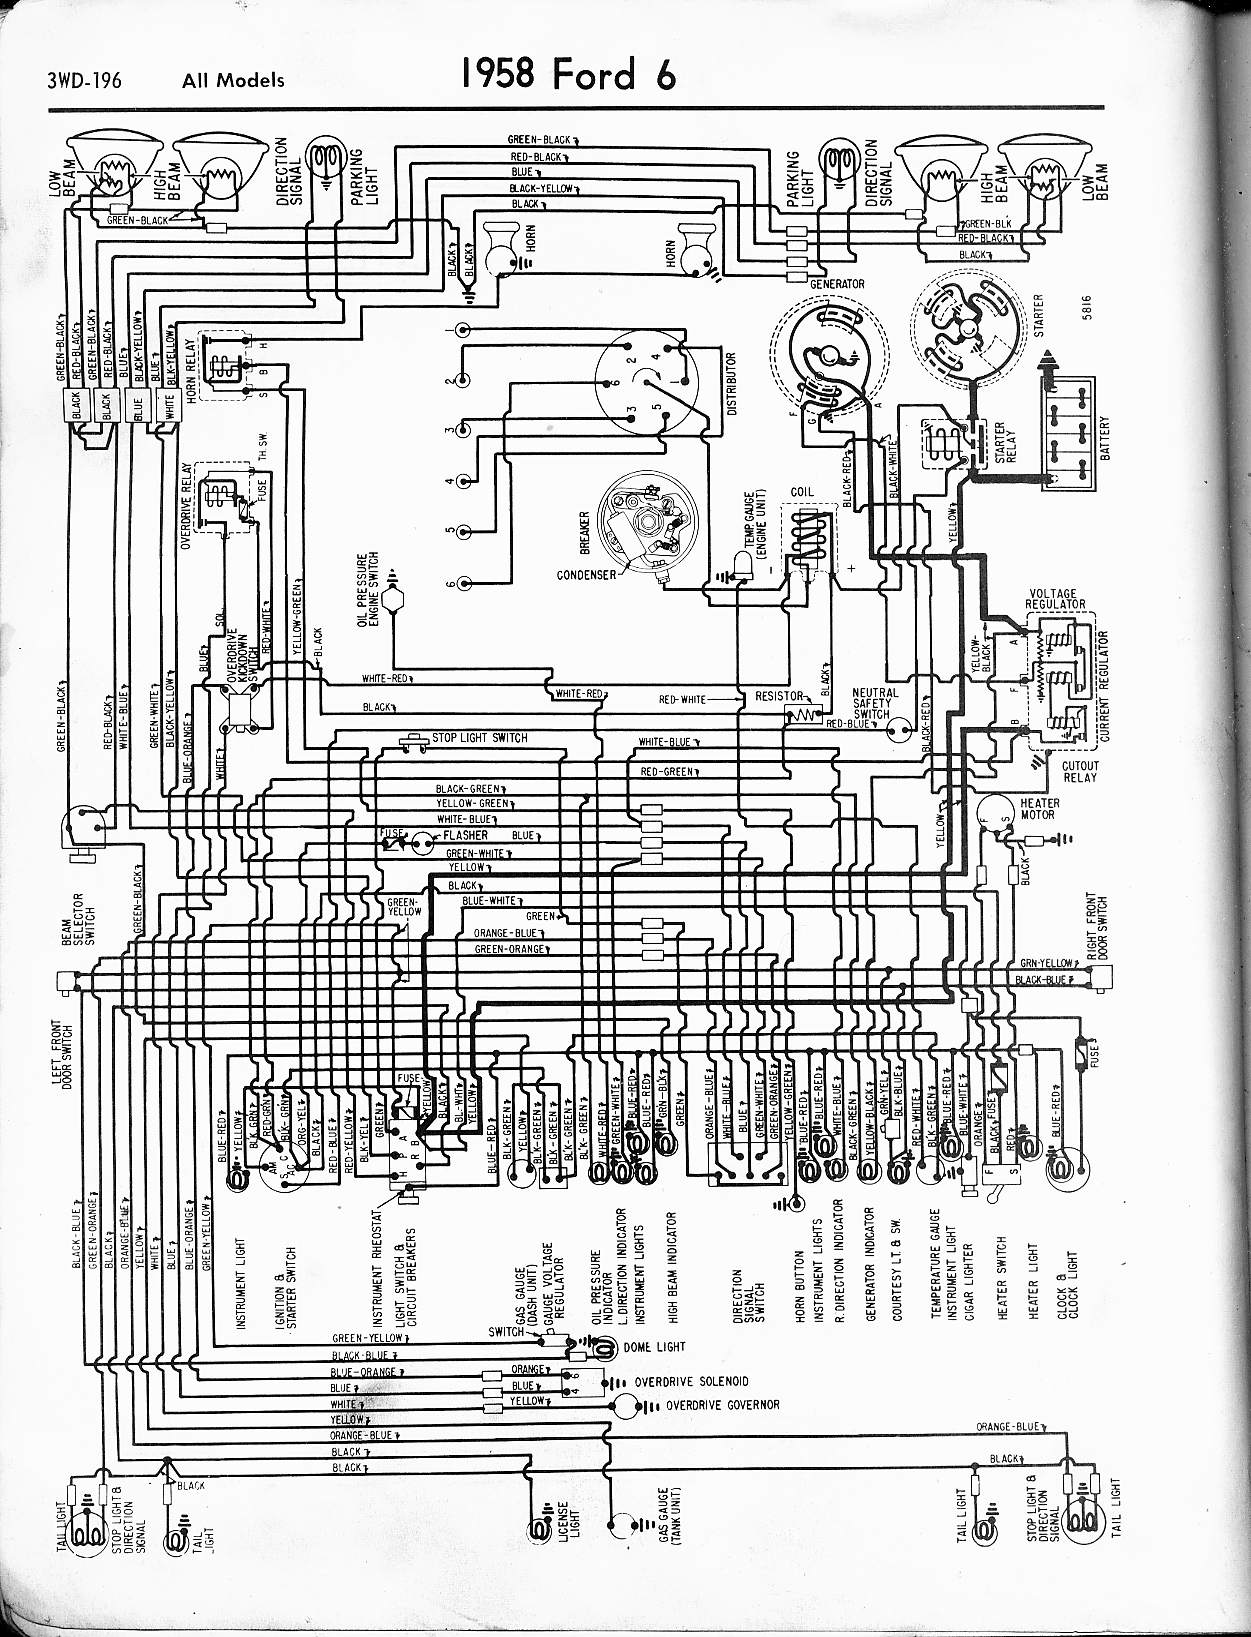 MWire5765 196 57 65 ford wiring diagrams